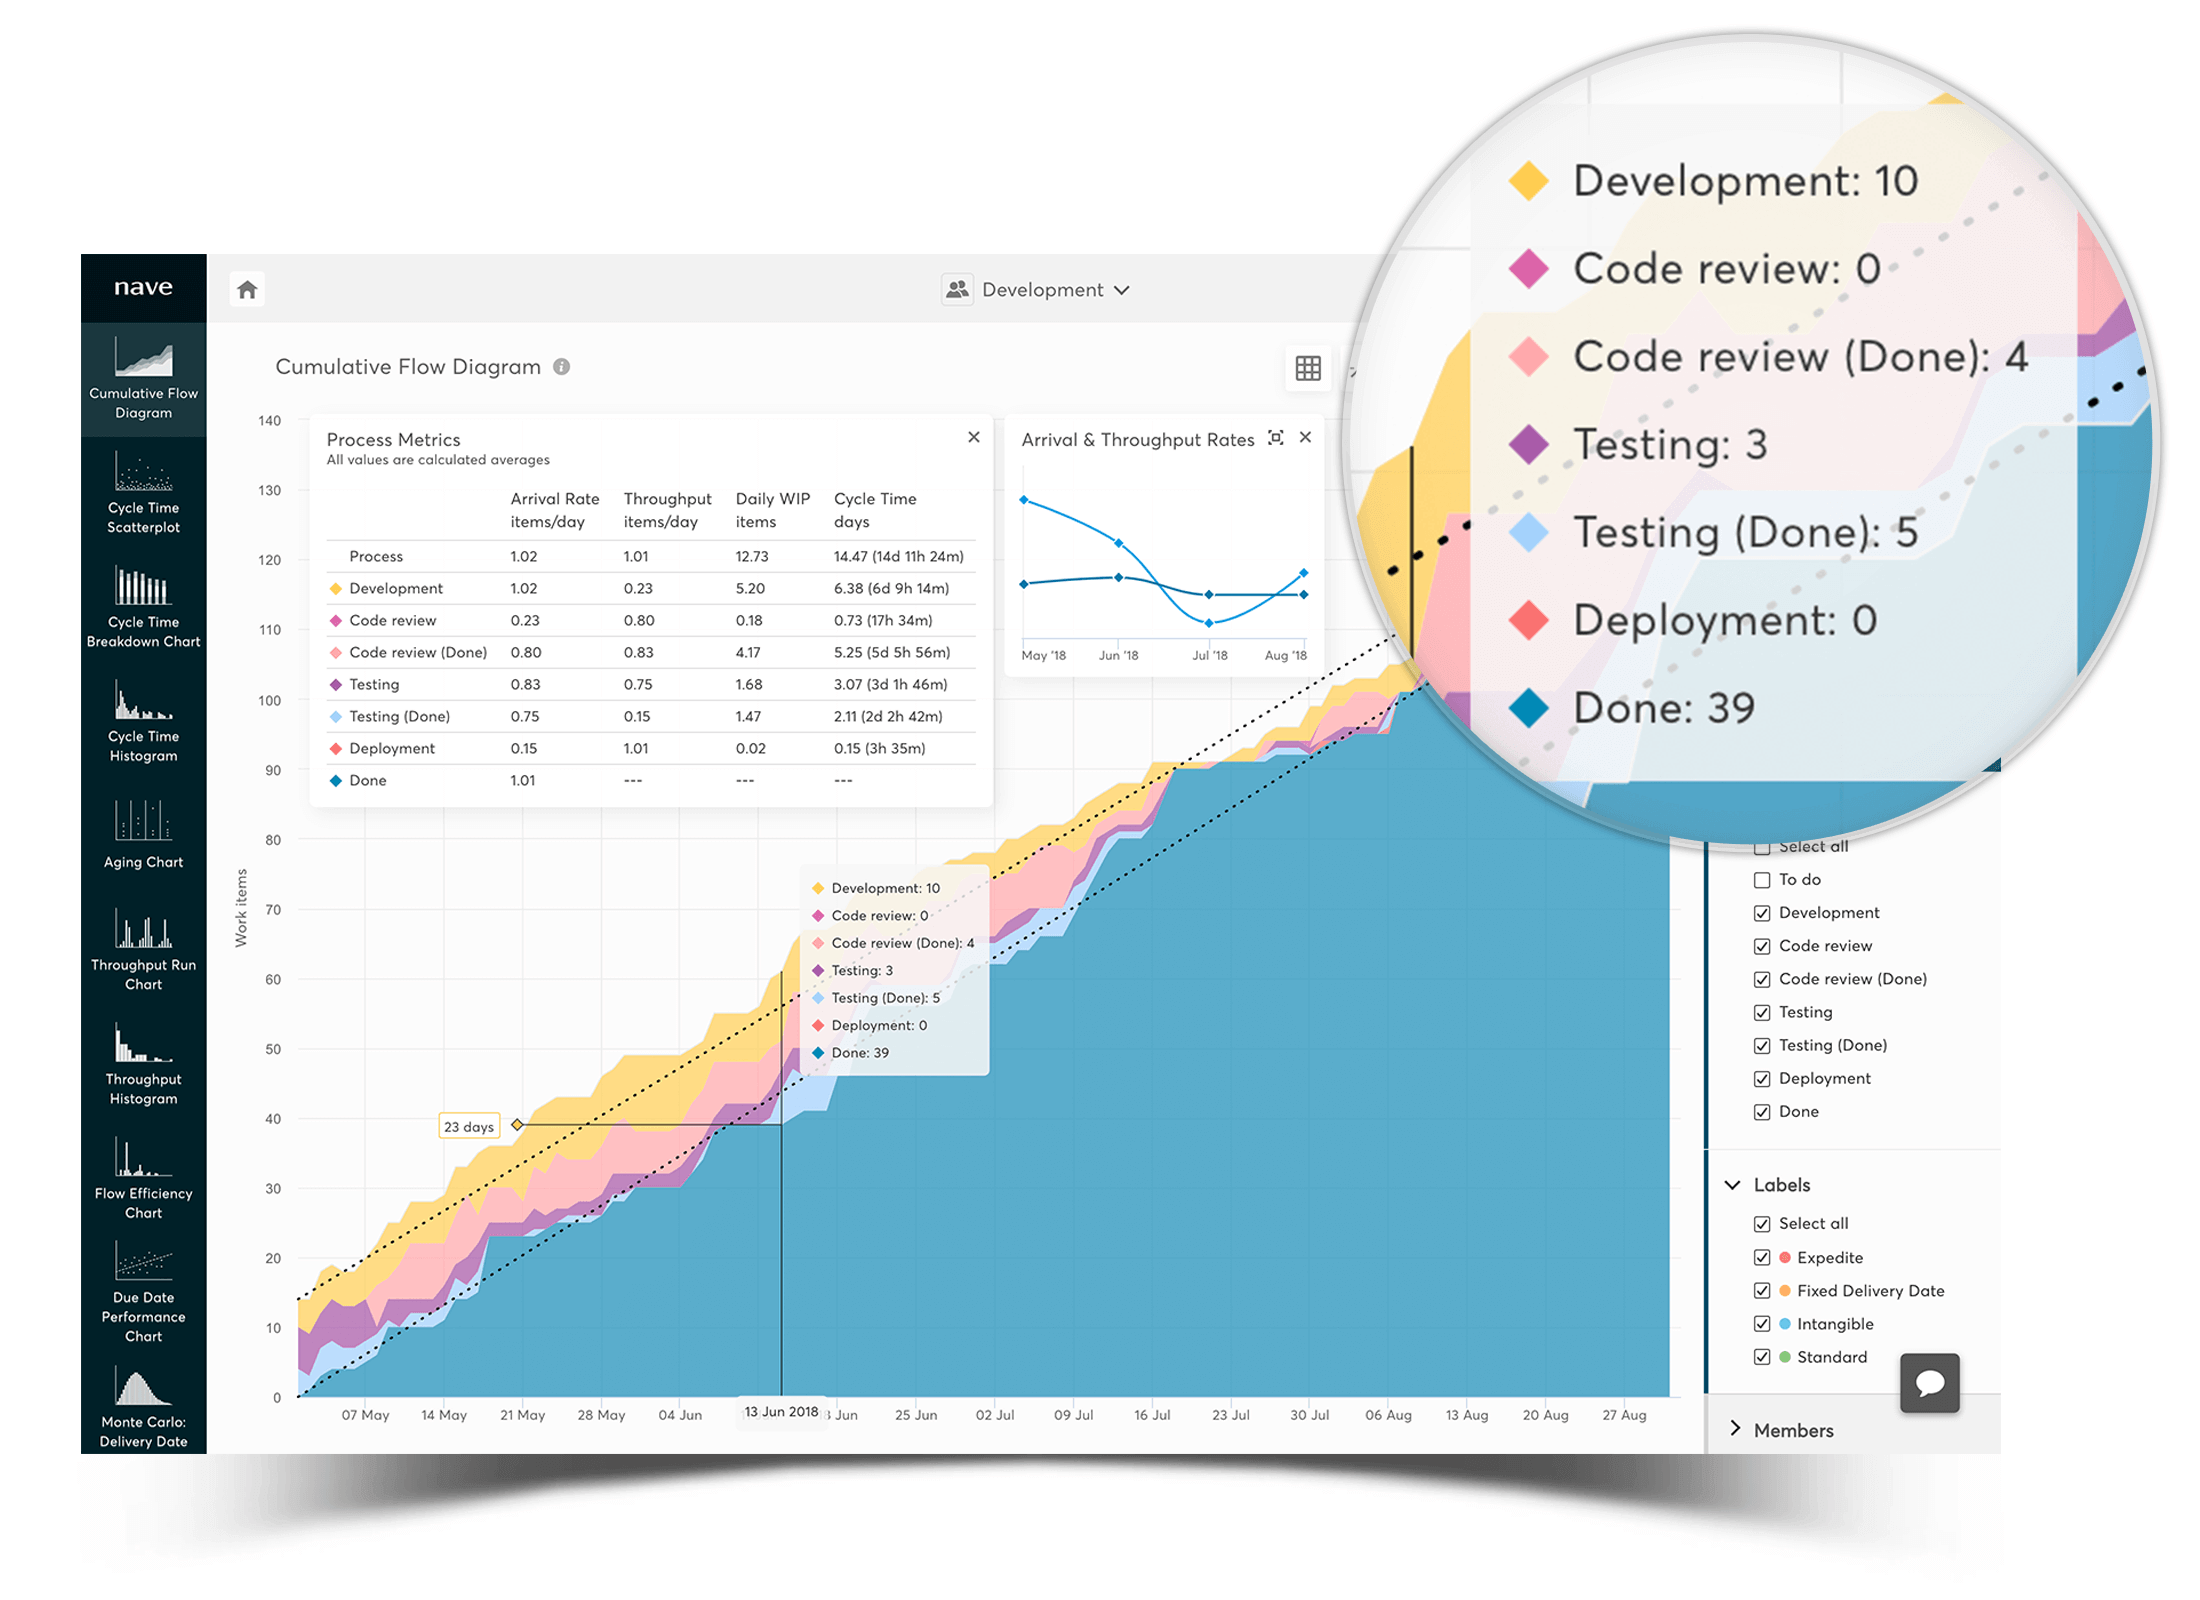 cumulative flow diagram - measure amount of work in progress